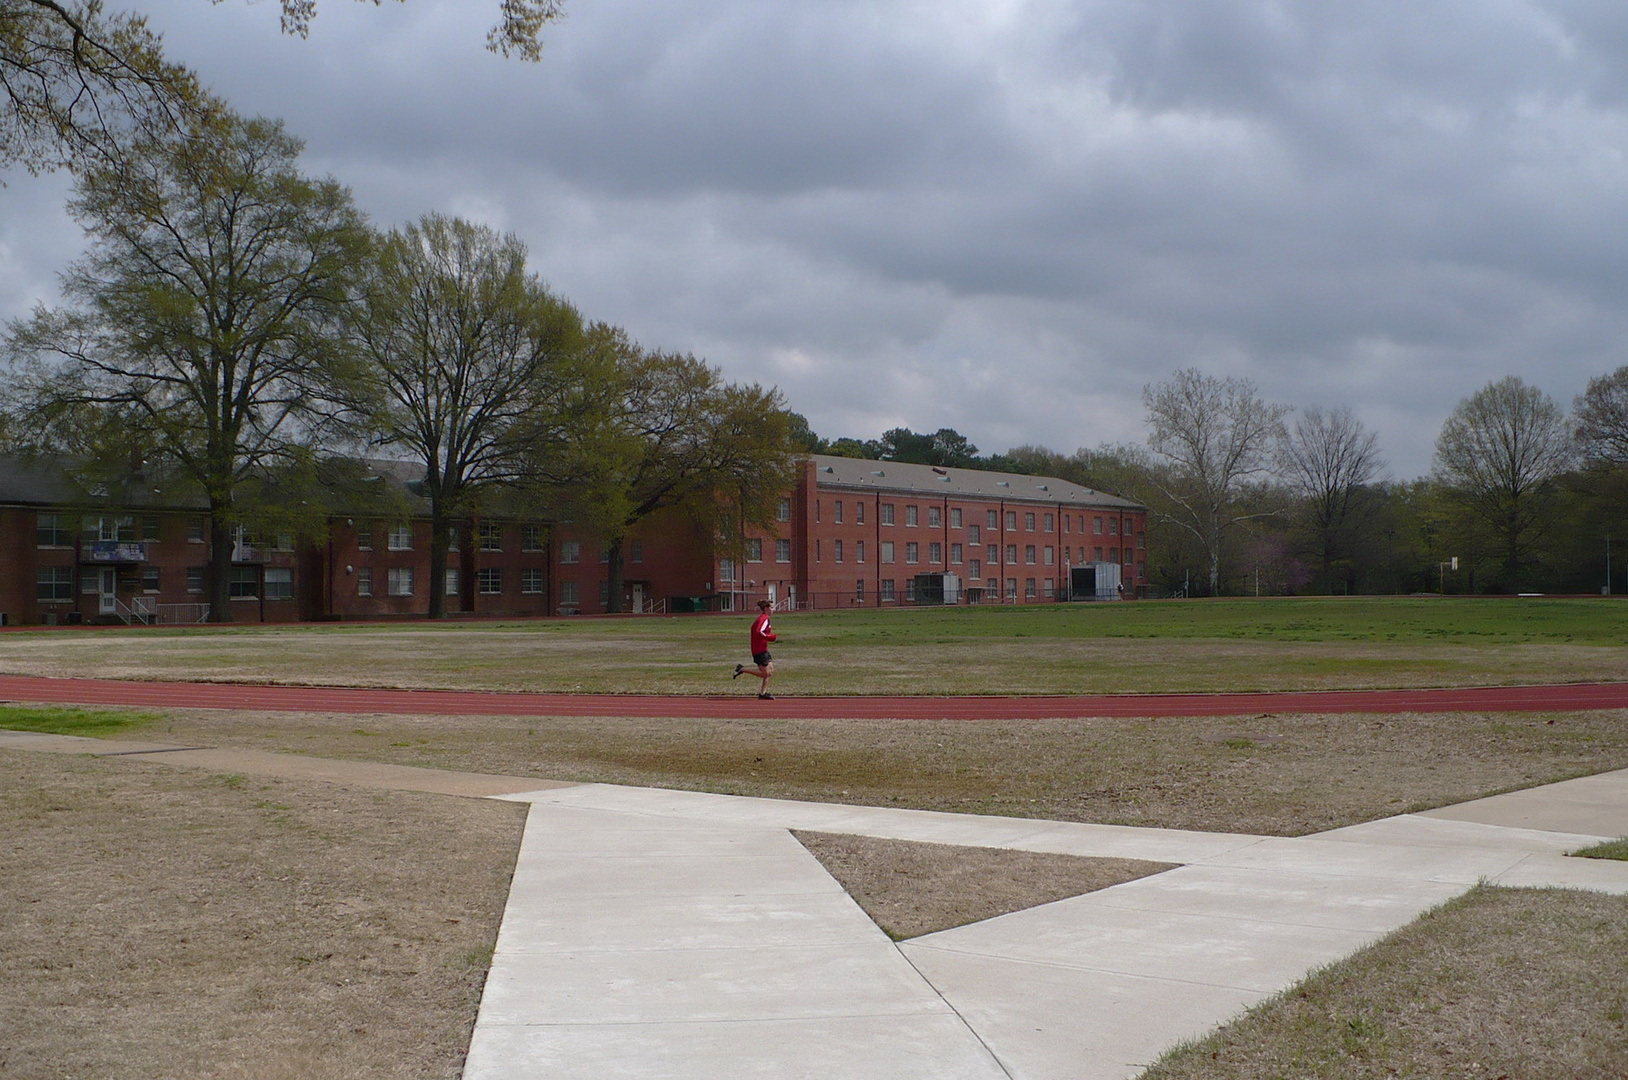 University of Memphis Campus Field - About to rain but the COLORS were amazing then